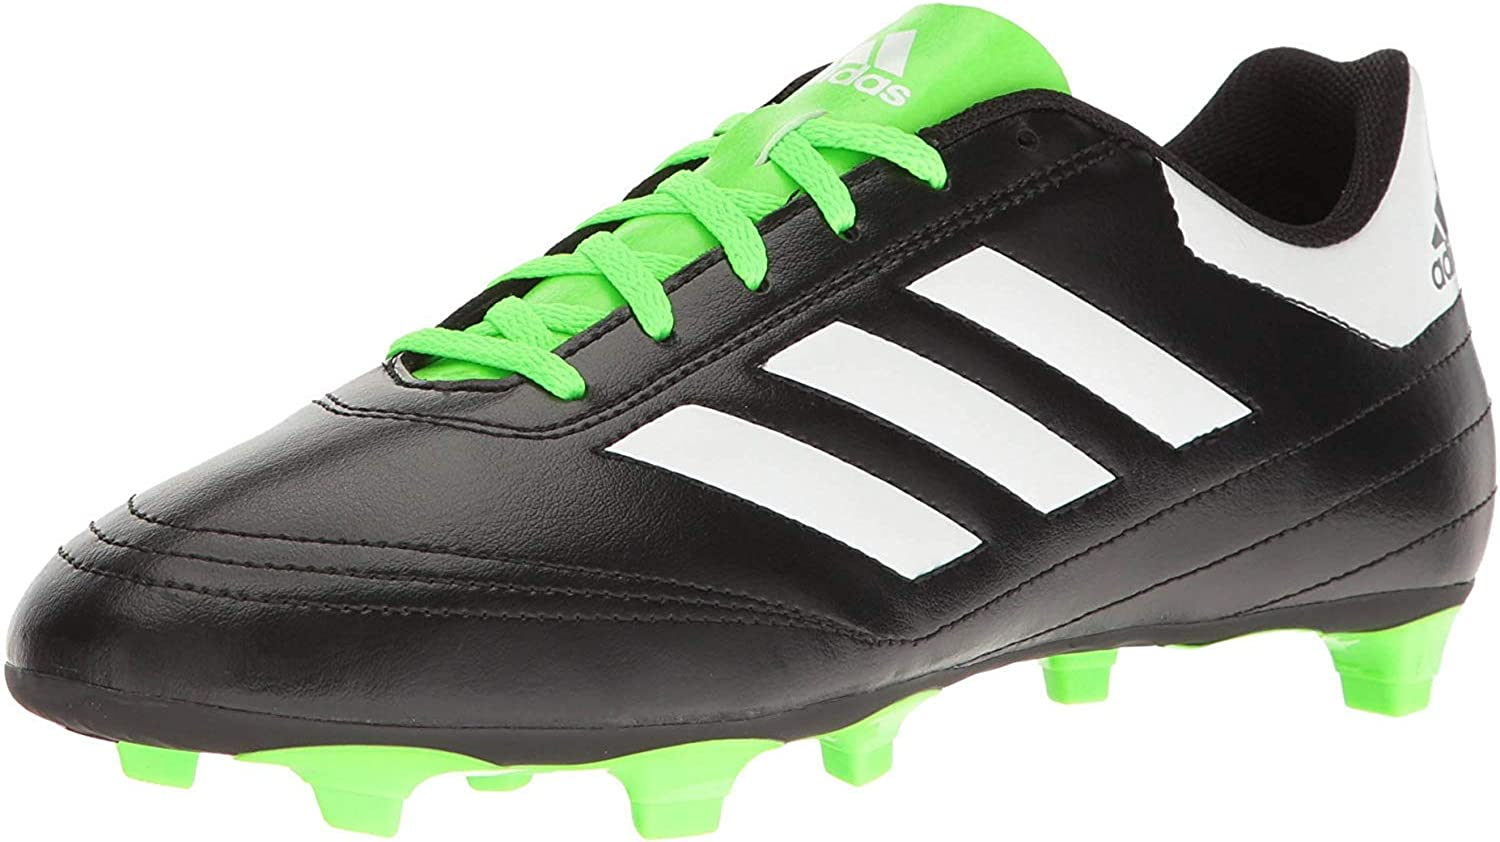 adidas Performance Men's Goletto VI FG Soccer Shoe, Black/White/Neon Green, 8 M US